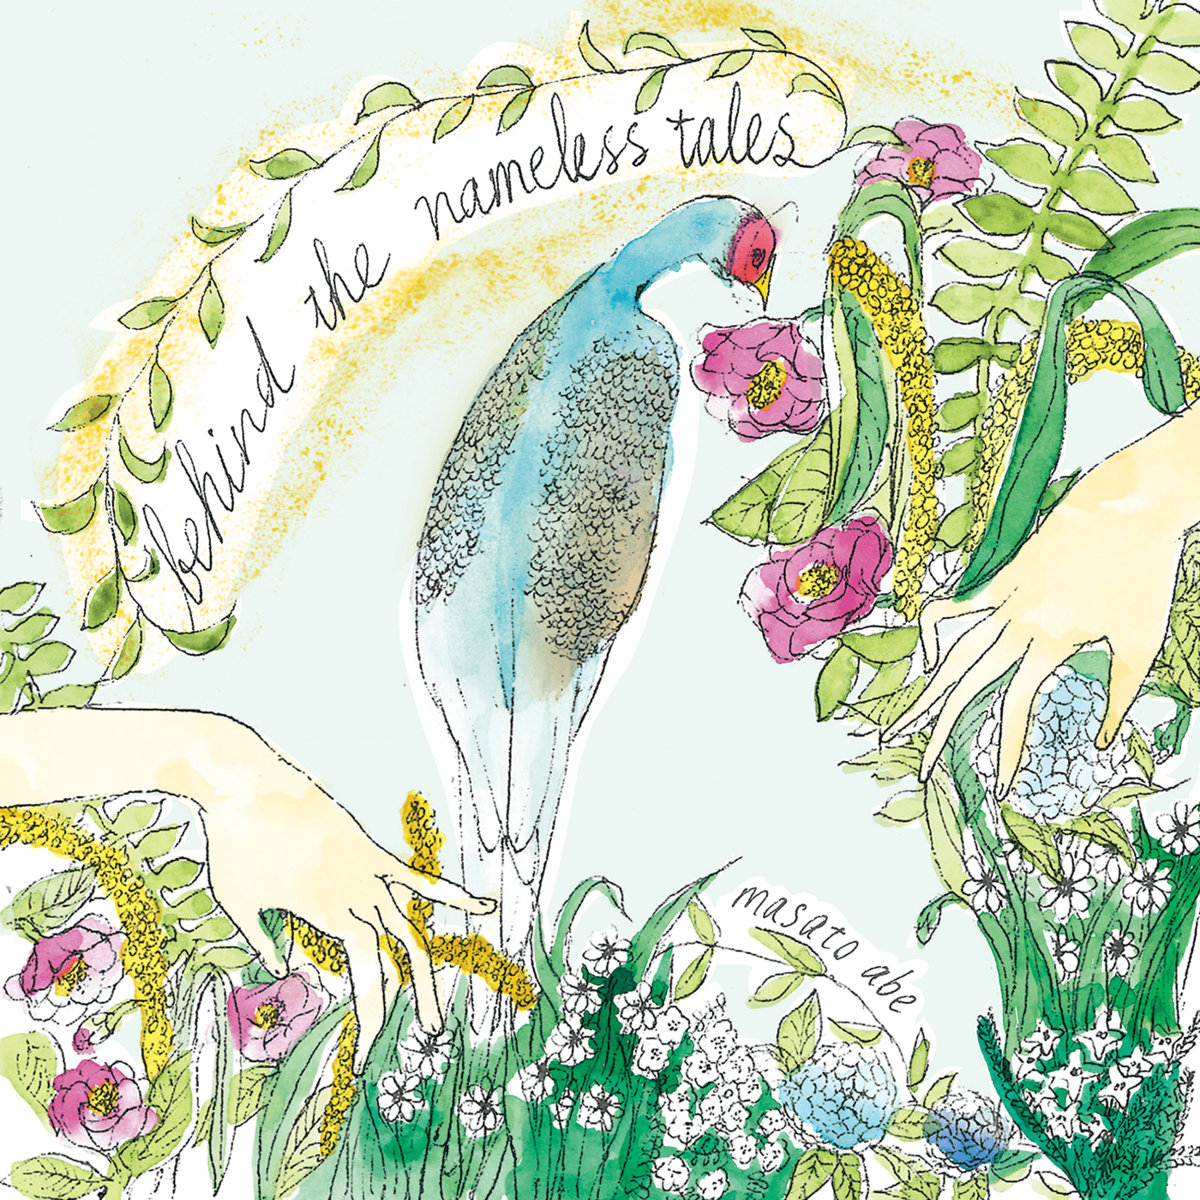 masato abe – behind the nameless tales